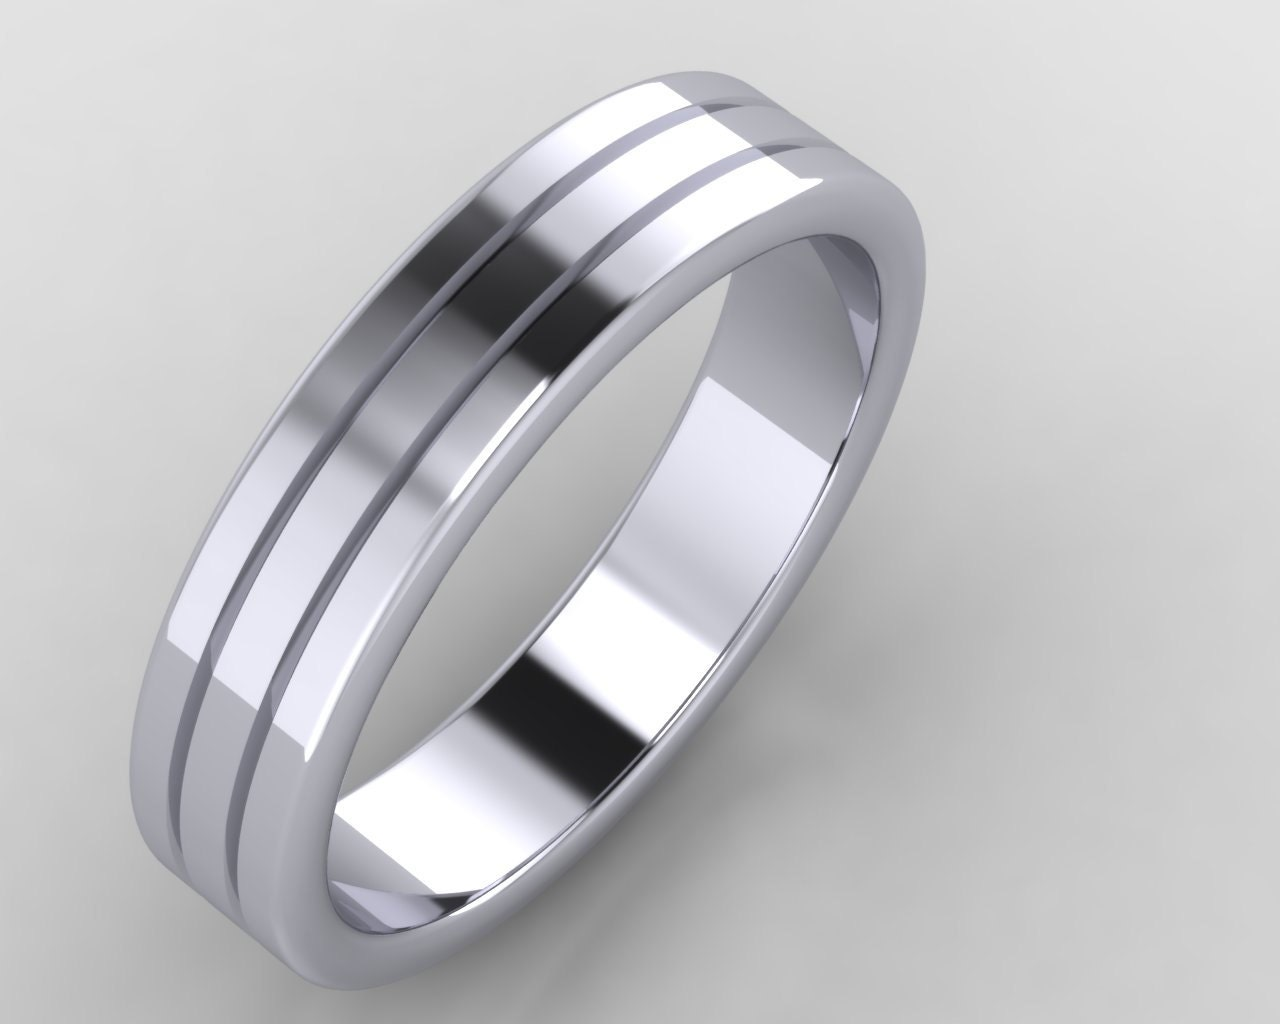 platinum 5mm mens wedding band 950 purity 5mm band 5mm